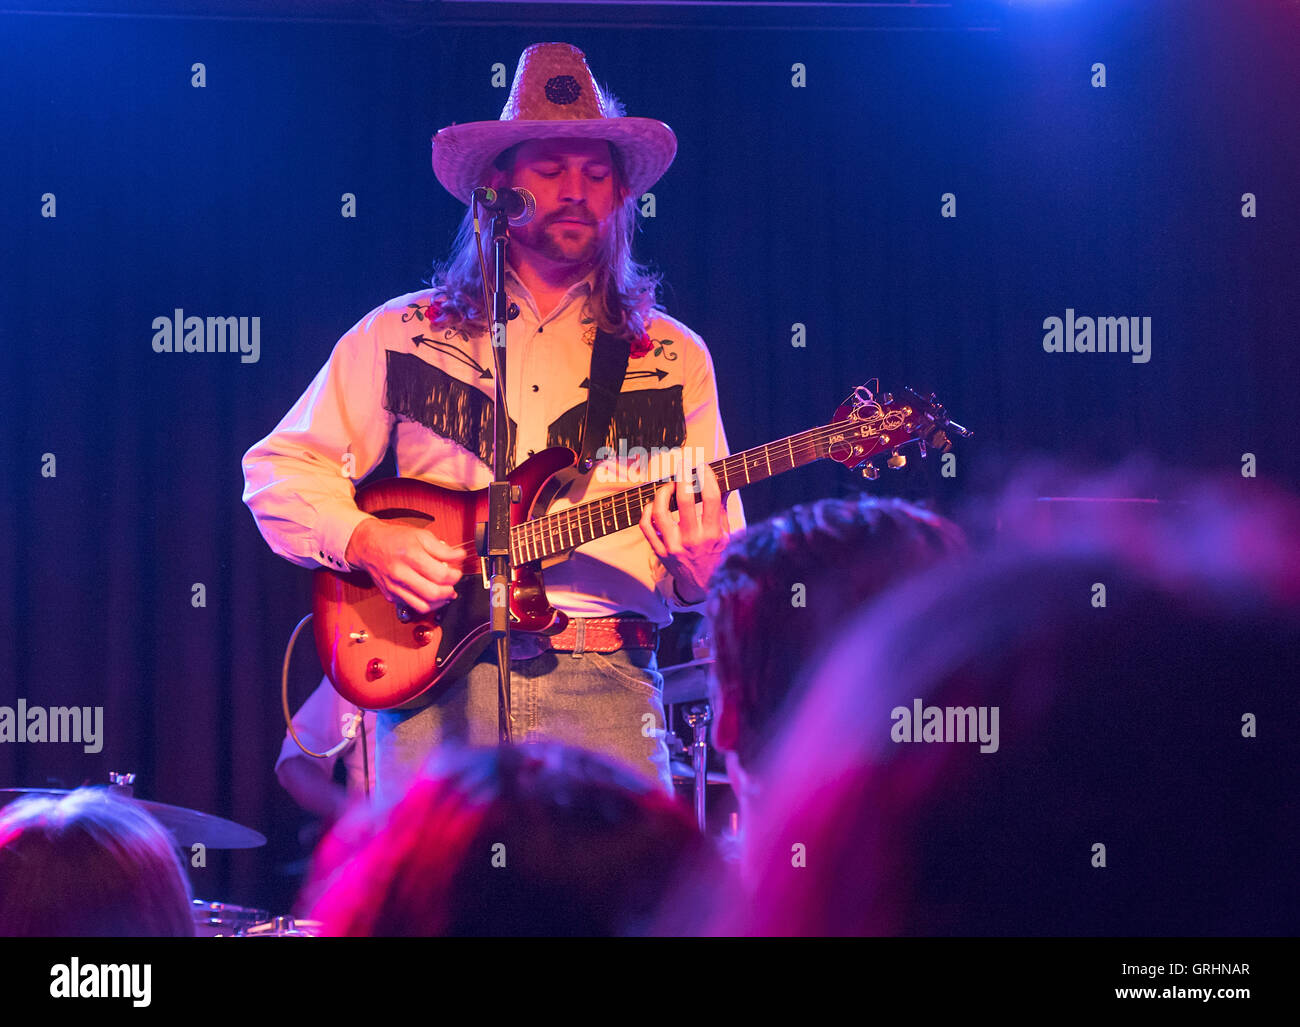 Karl Blau Country singer playing at the Lexington Islington London UK - Stock Image